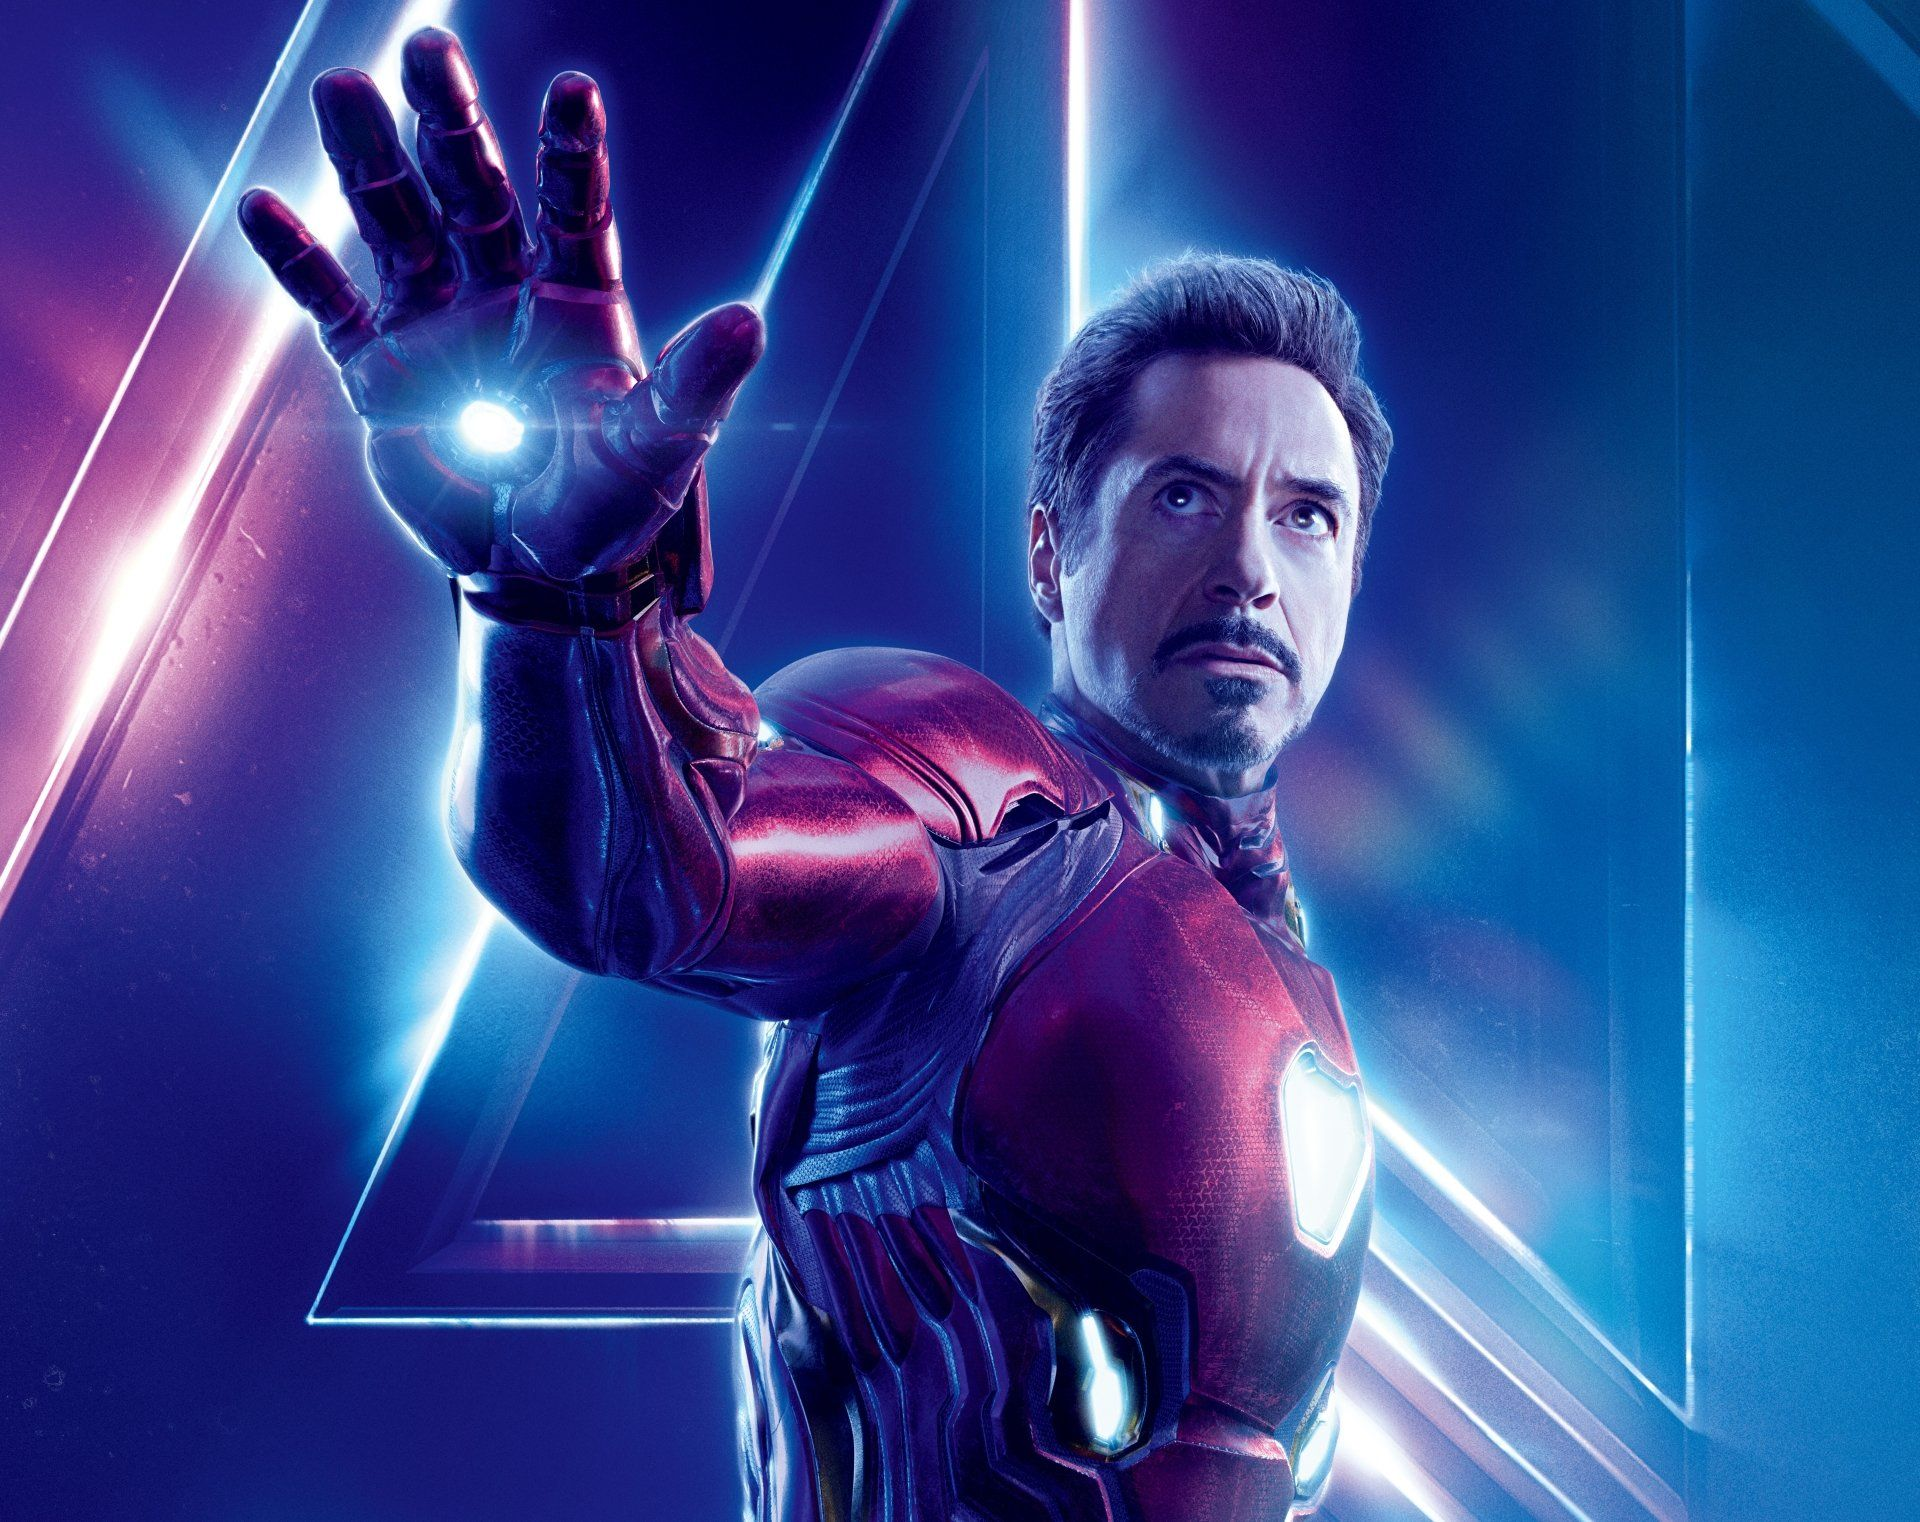 Iron Man Avengers Infinity War 8k Ultra Hd Wallpaper And Background Image 7932x6287 Id 915167 Iron Man Avengers Iron Man Avengers